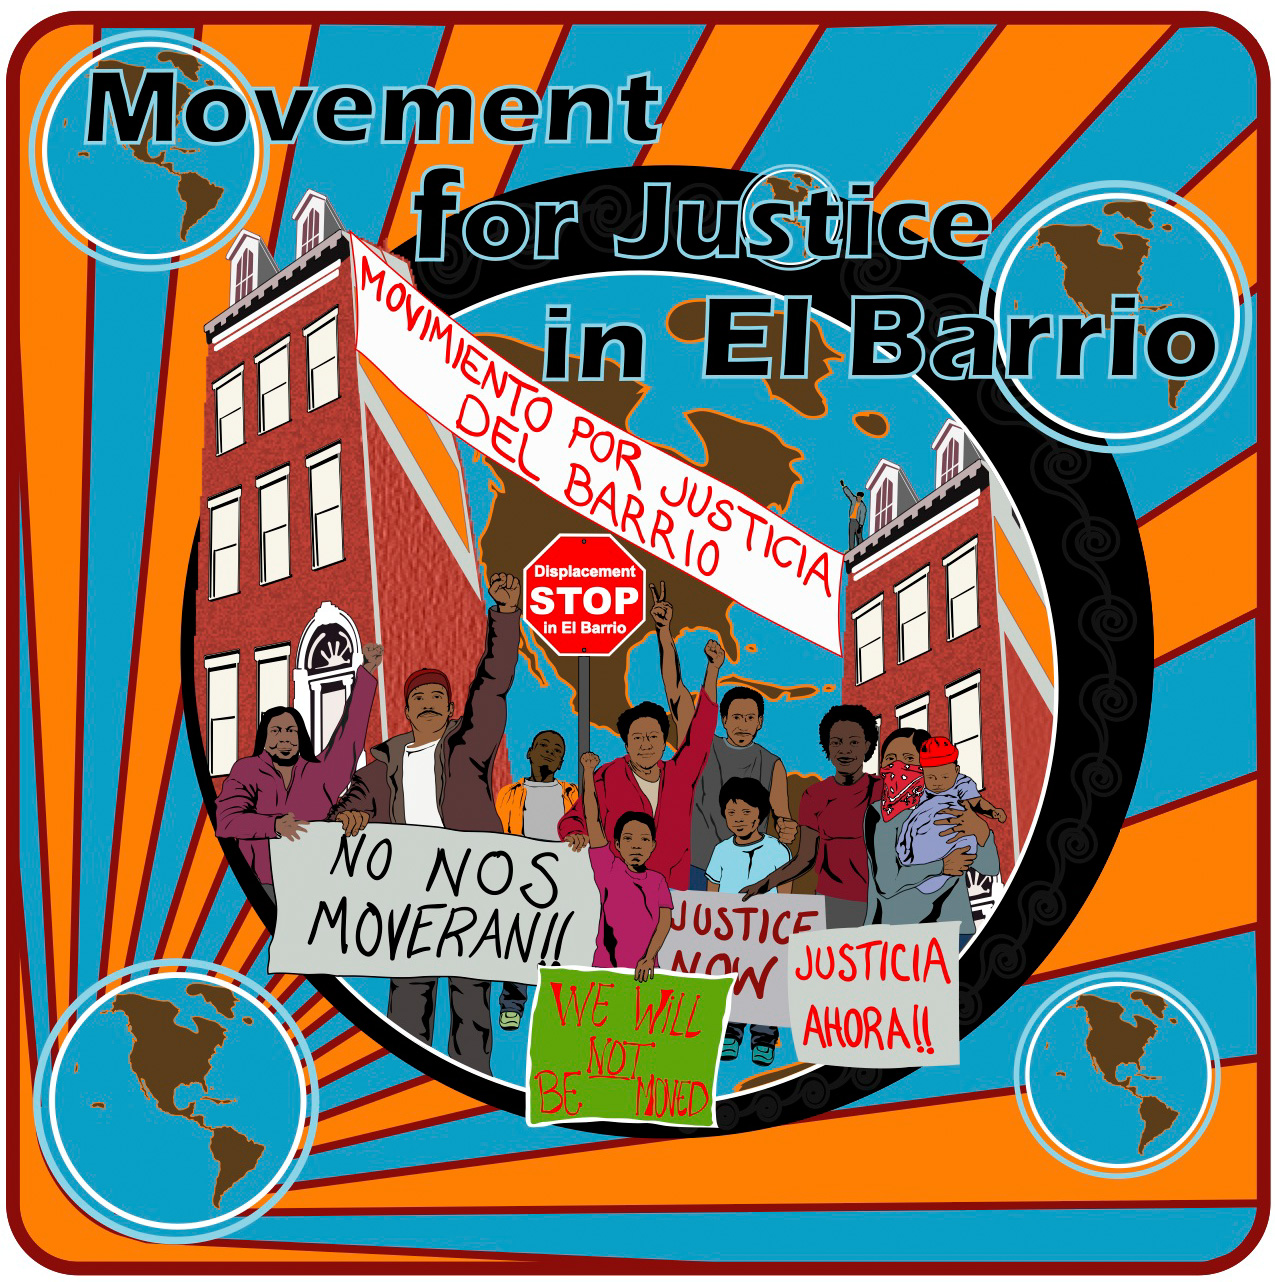 ovement for Justice in El Barrio logo